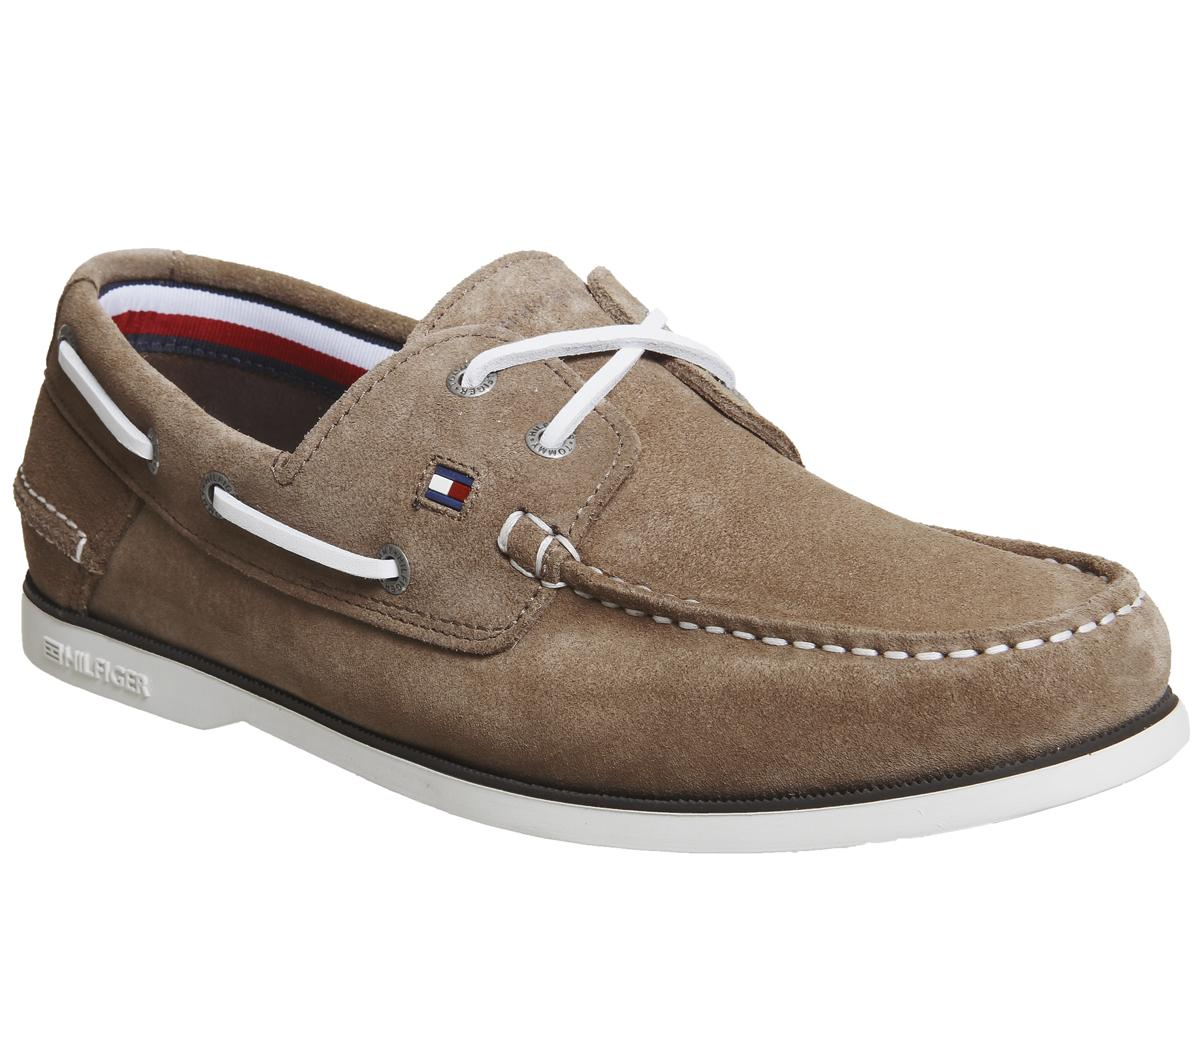 Tommy Hilfiger Classic Boat Shoes Taupe